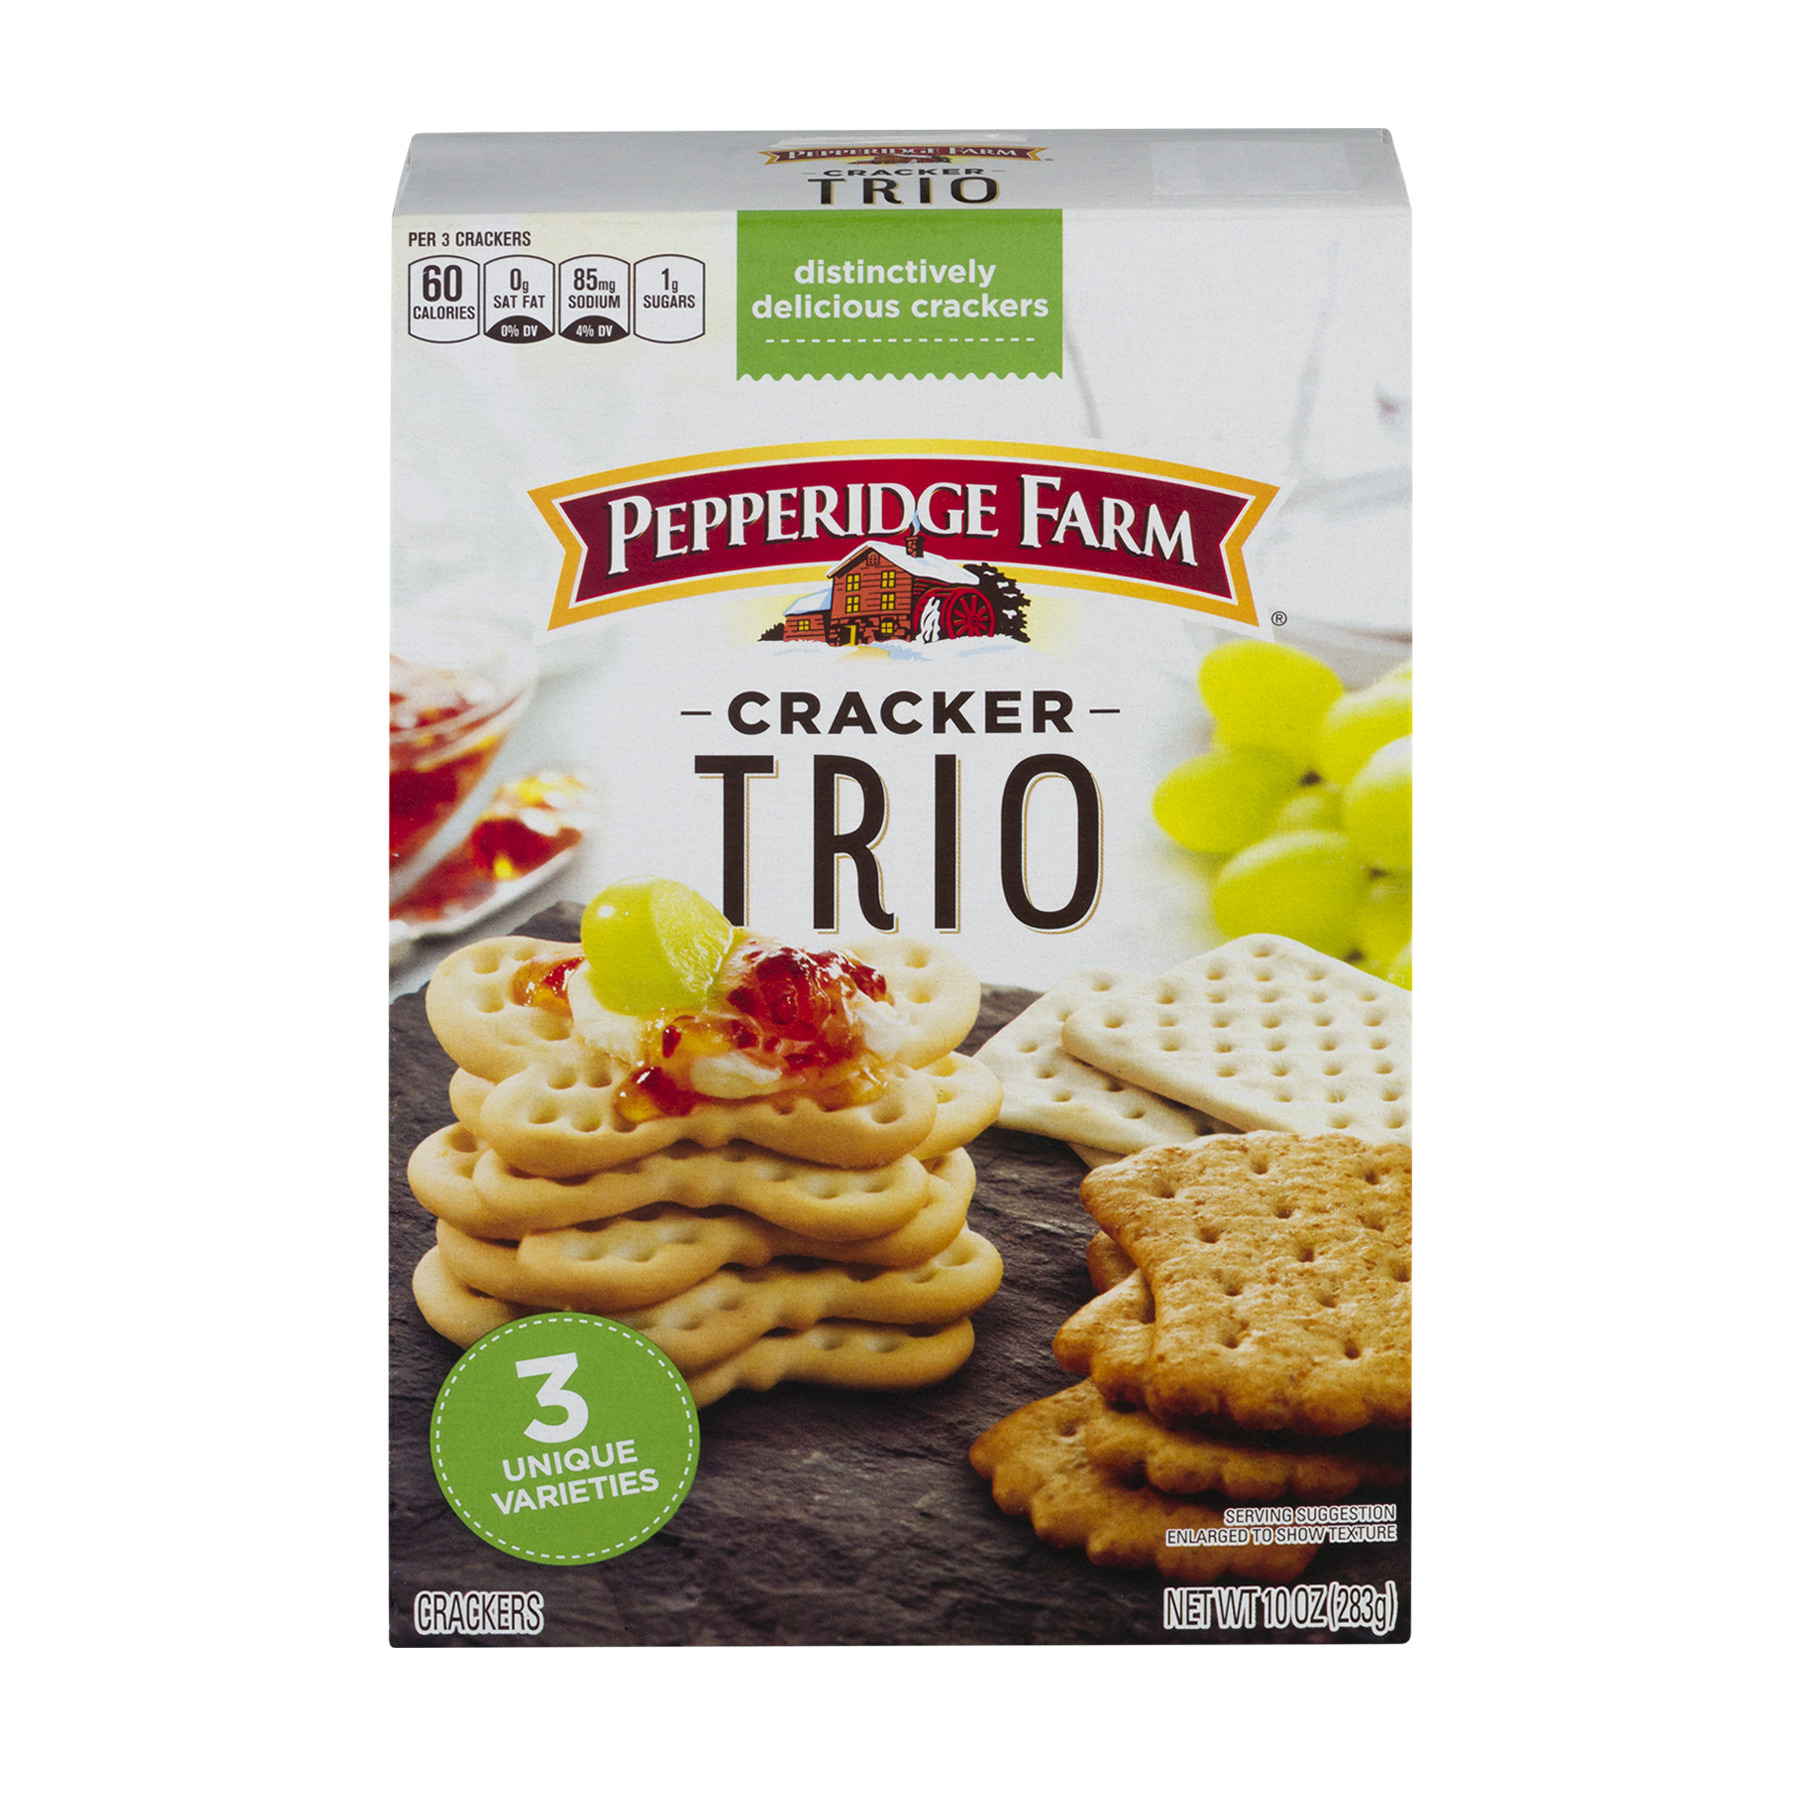 (2 Pack) Pepperidge Farm Trio Variety Crackers, 10 oz. Box